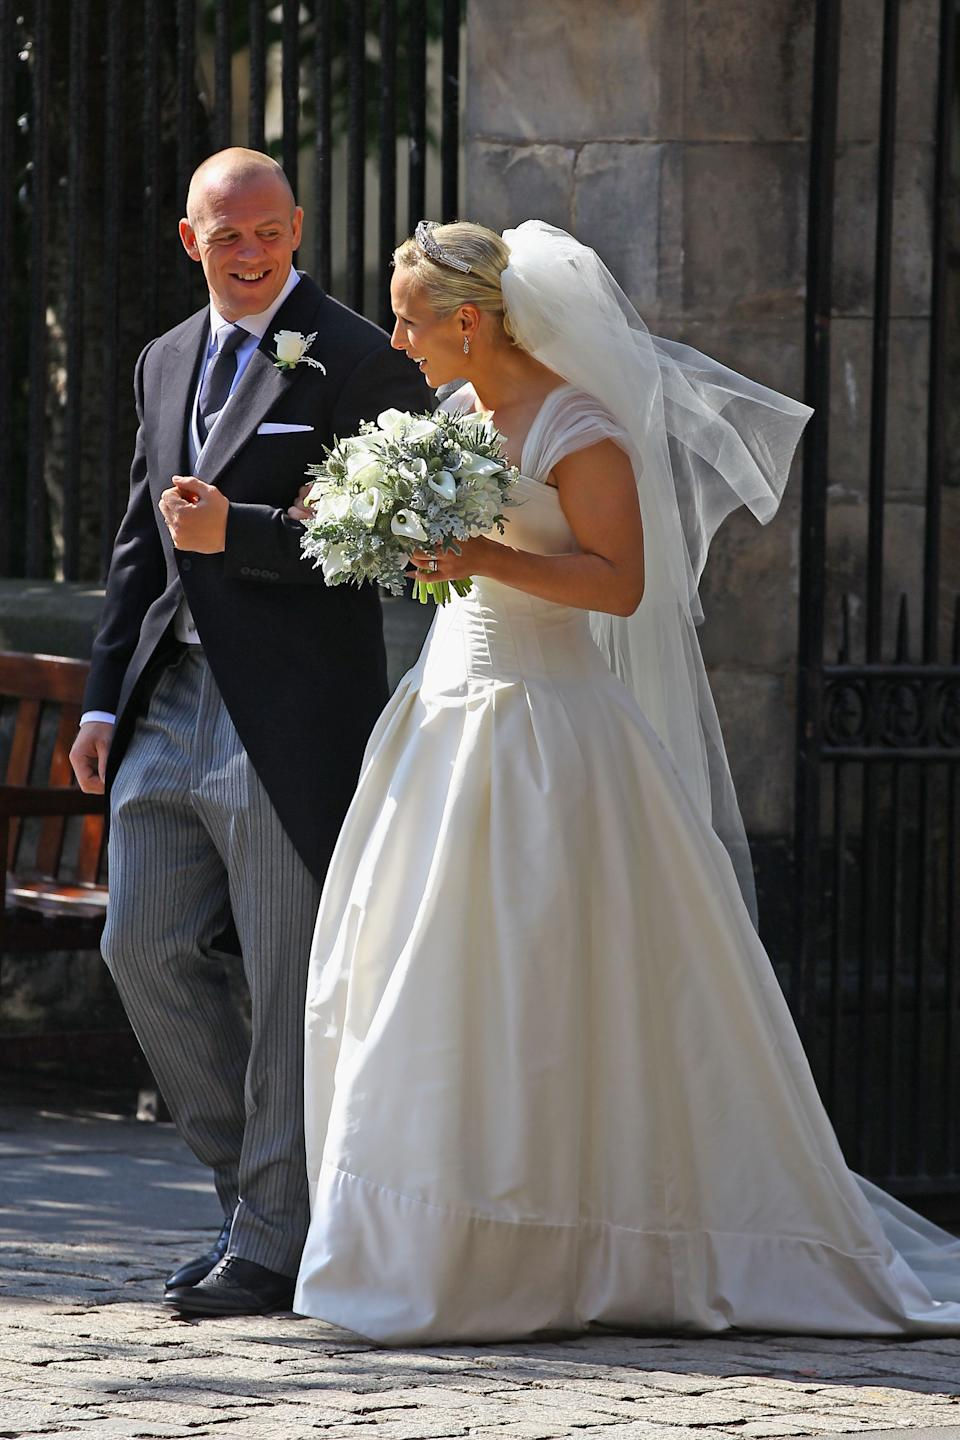 <p>Mike Tindall and Zara Phillips leaving after their Royal wedding at Canongate Kirk on 30 July, 2011 in Edinburgh. (Jeff J Mitchell/Getty Images)</p>